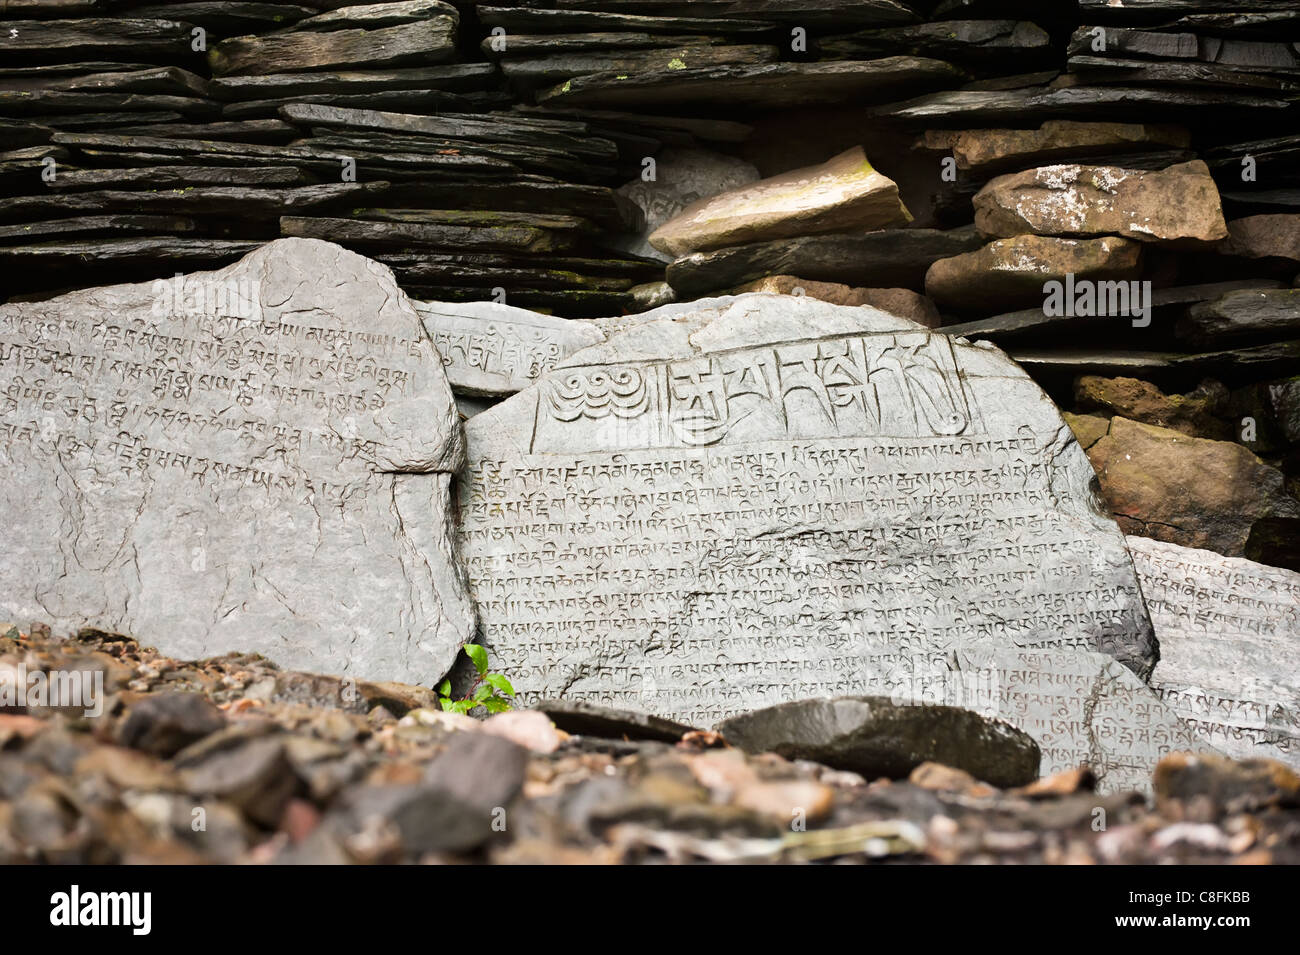 Buddhist prayer stone with mantra wet after rain Stock Photo